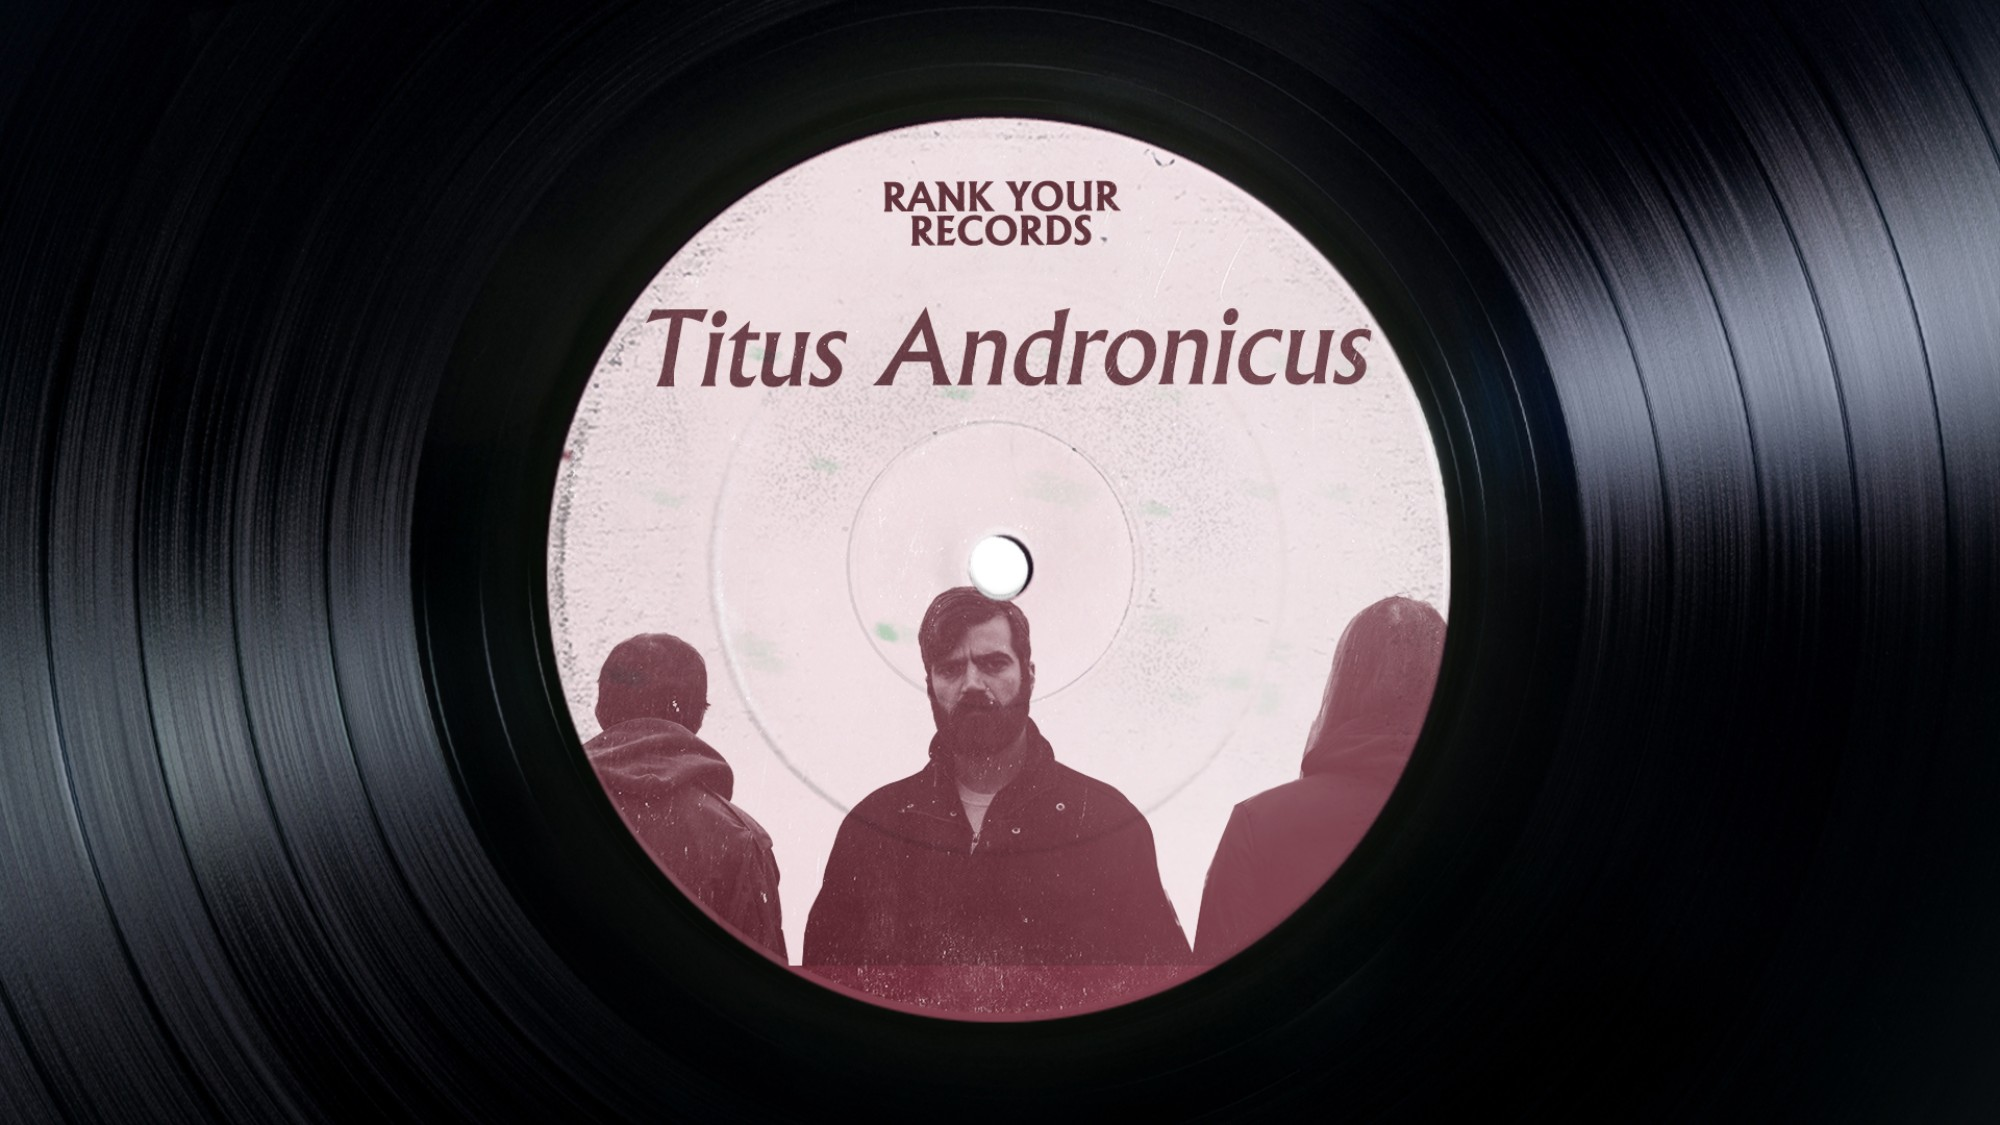 Titus Andronicus' Patrick Stickles Ranks All of the Band's